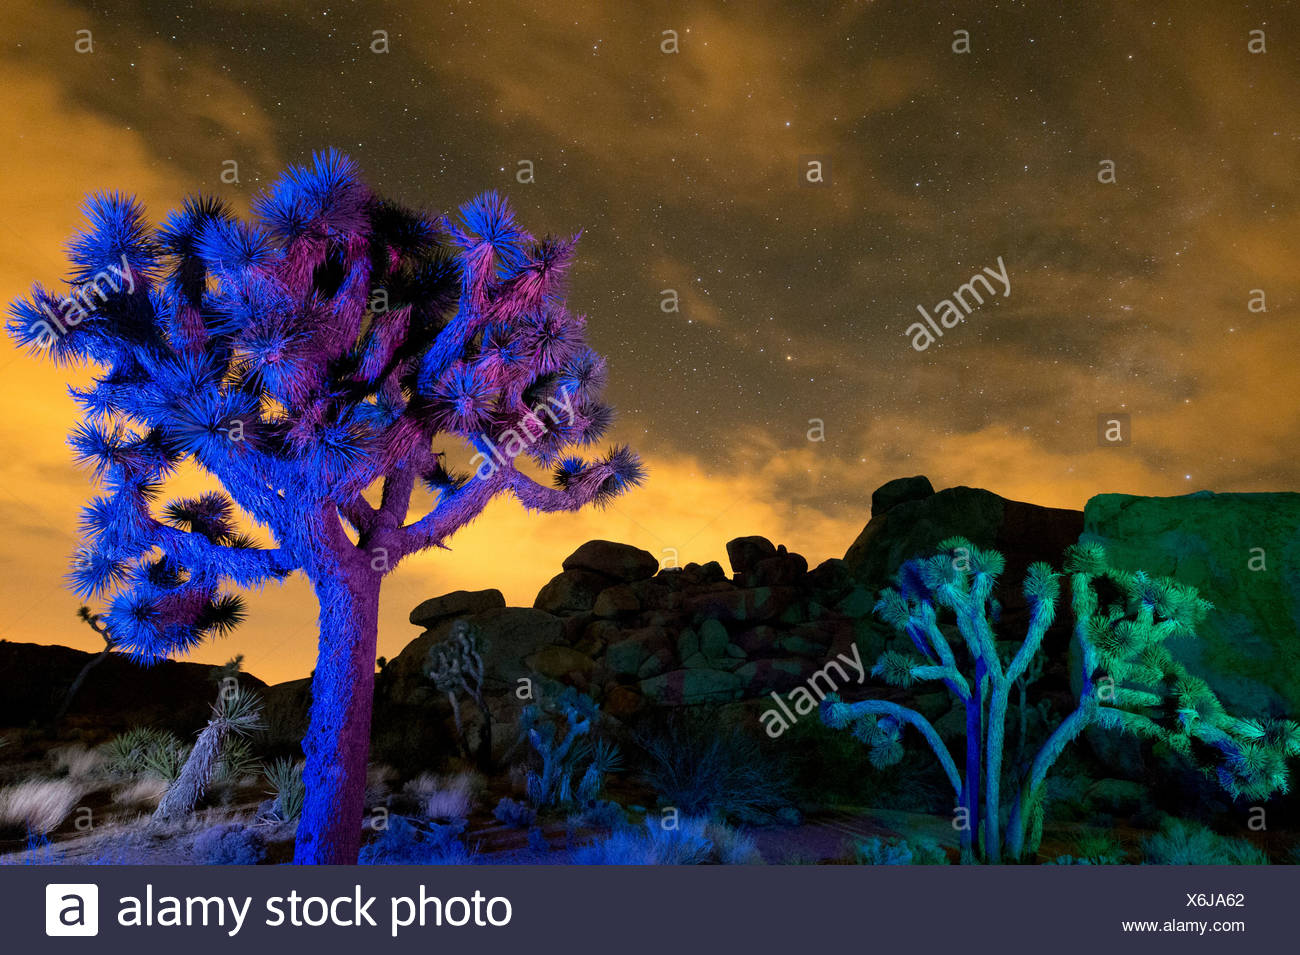 Lumières colorées sur les arbres la nuit, Joshua Joshua Tree National Park, California, USA Photo Stock